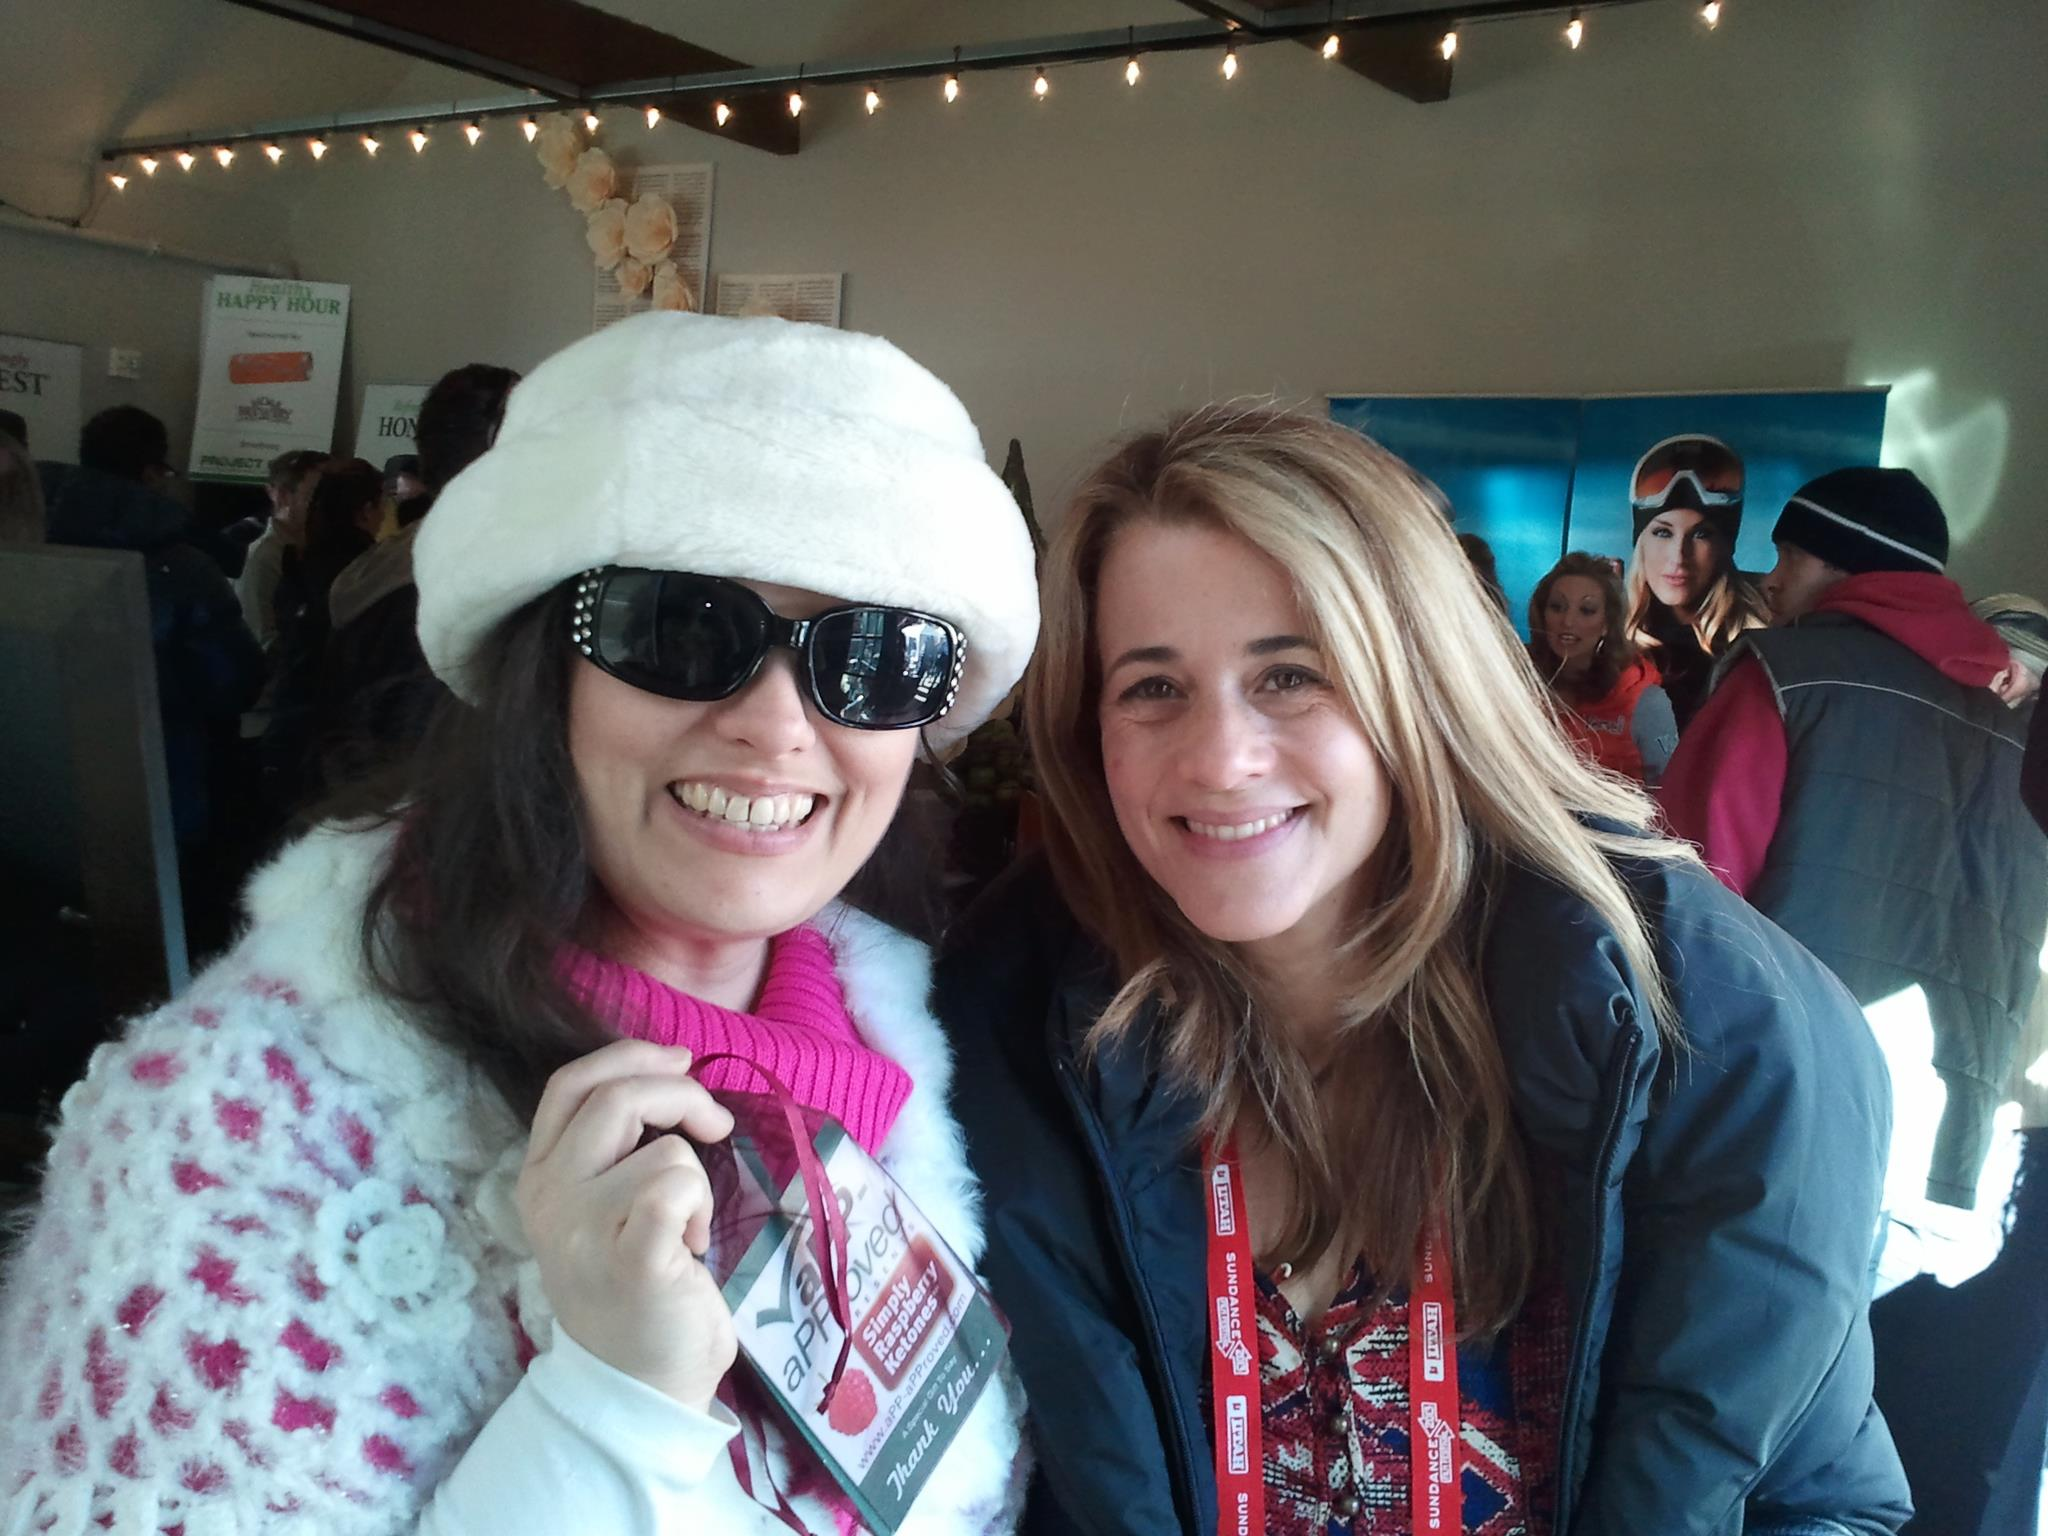 Here is Claudine Ohayon getting her Simply Raspberry Ketones! She's in the movie Concussion which premiered here at Sundance